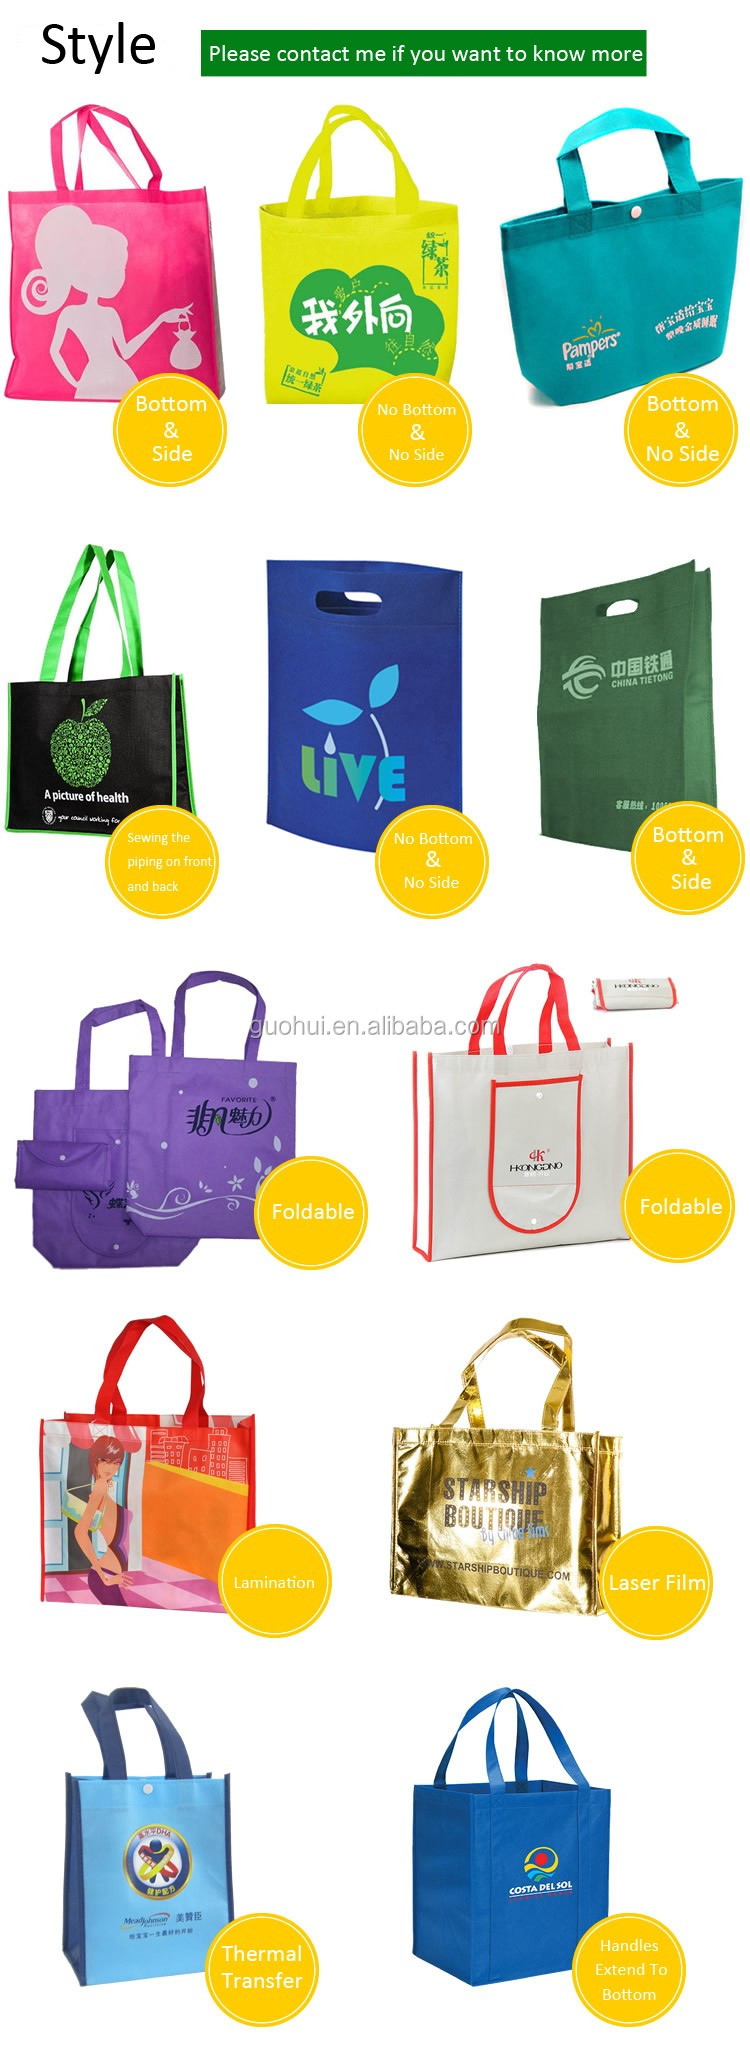 Extra large laminated PP woven tote bag